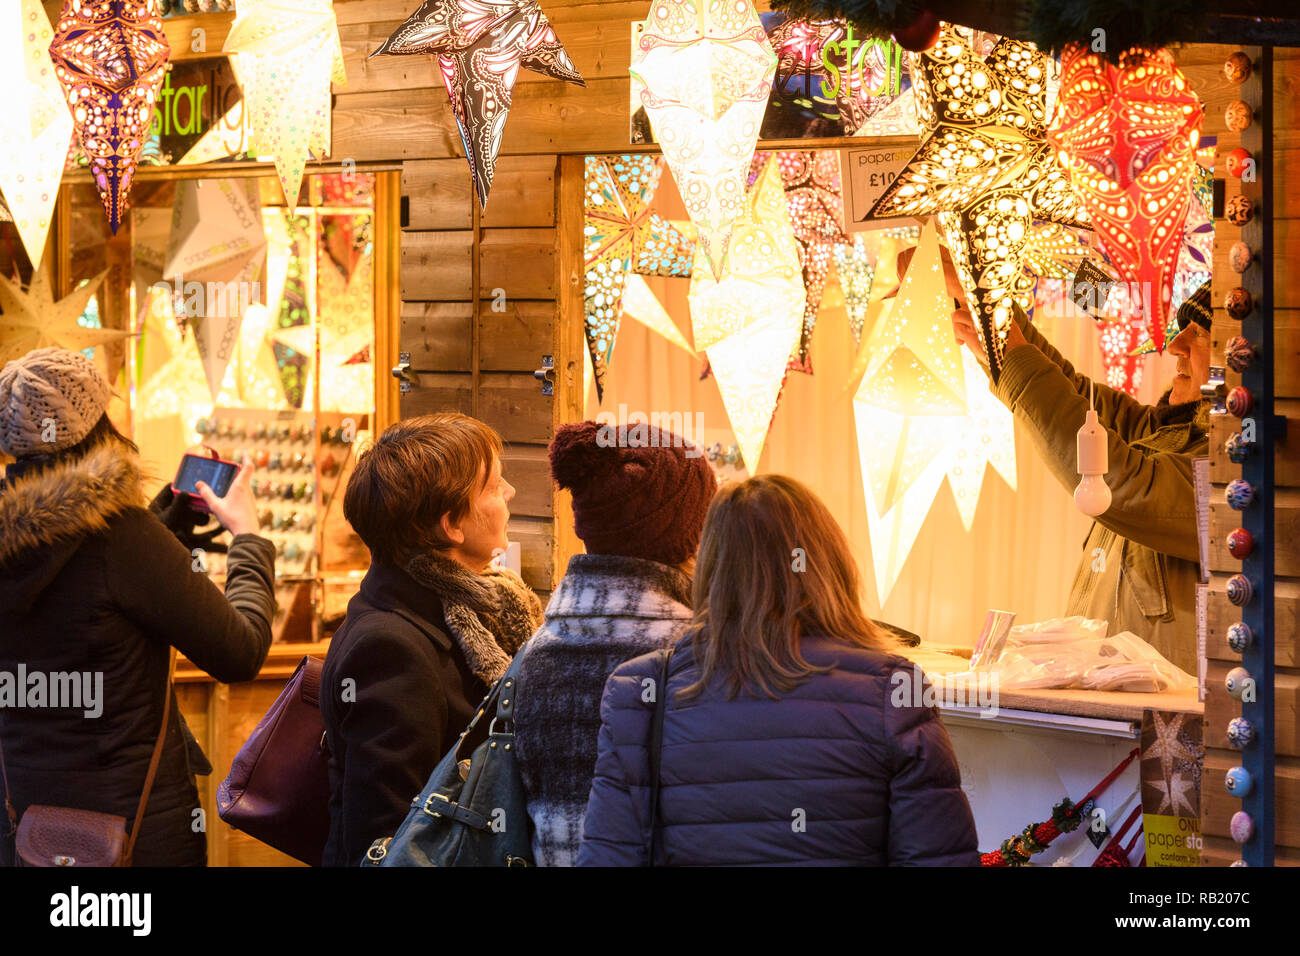 People at Christmas Market stall (potential customers) looking at paper star lights (lanterns) on display casting warm golden glow - York, England, UK - Stock Image